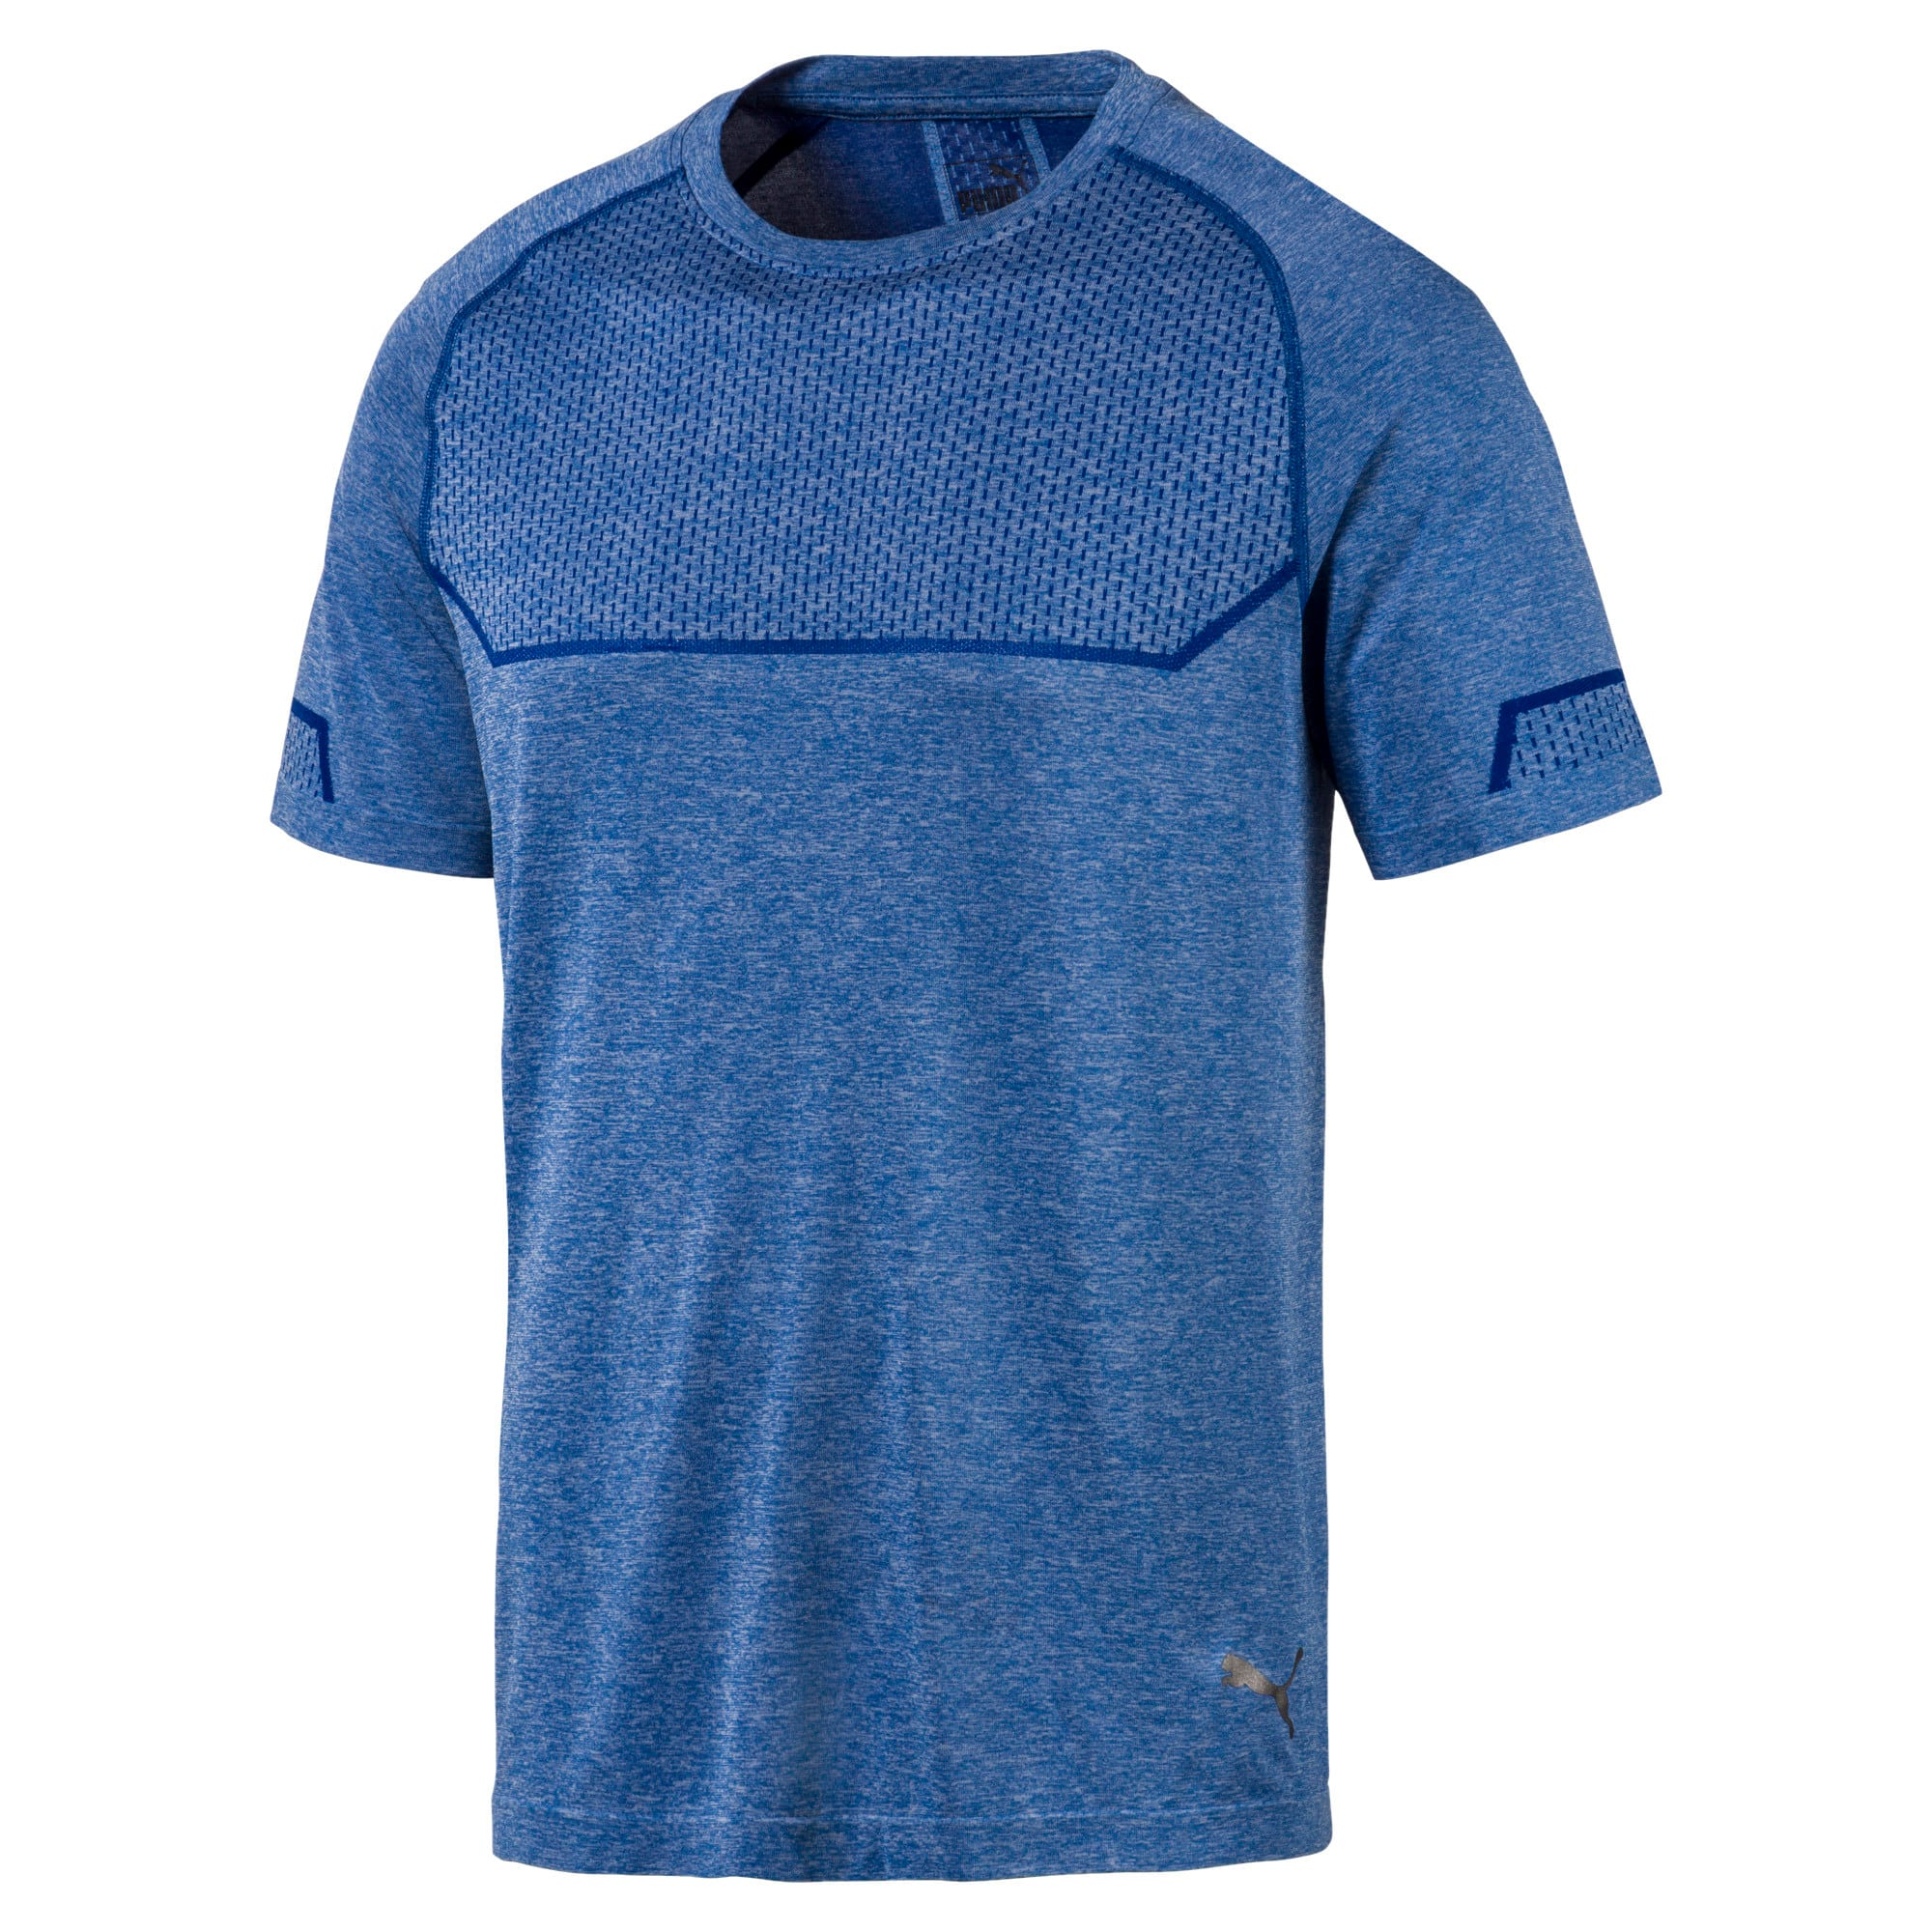 Energy Seamless Men's Training Tee, Galaxy Blue Heather, large